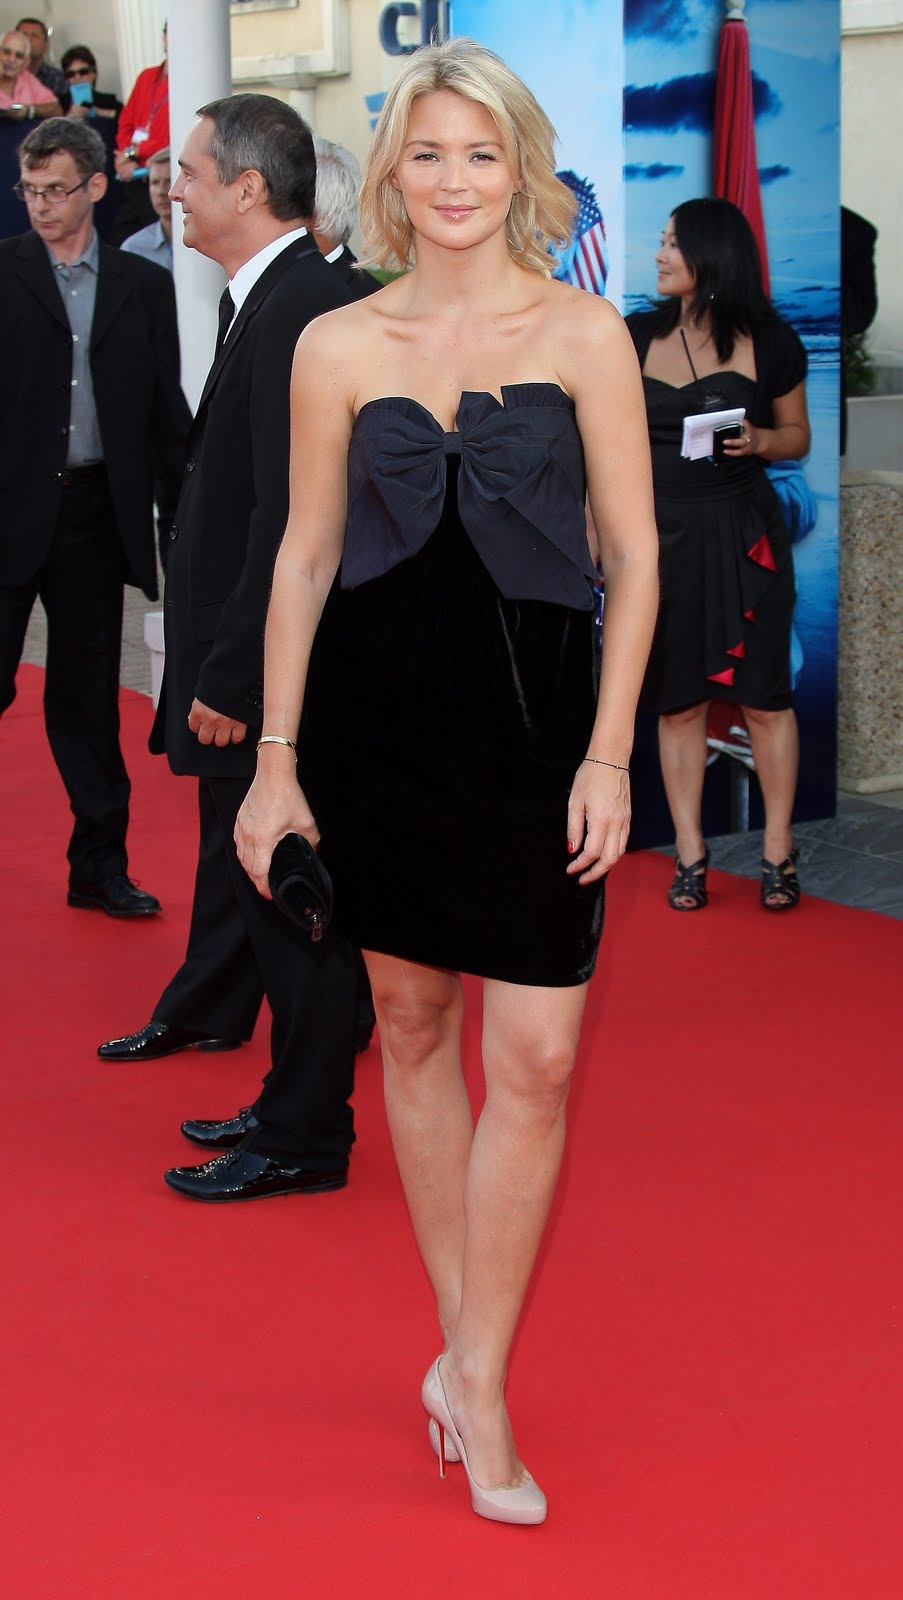 Virginie Efira Opening Ceremony 010 122 440lo This is what you get when you add together 5 nights of inadequate sleep, ...